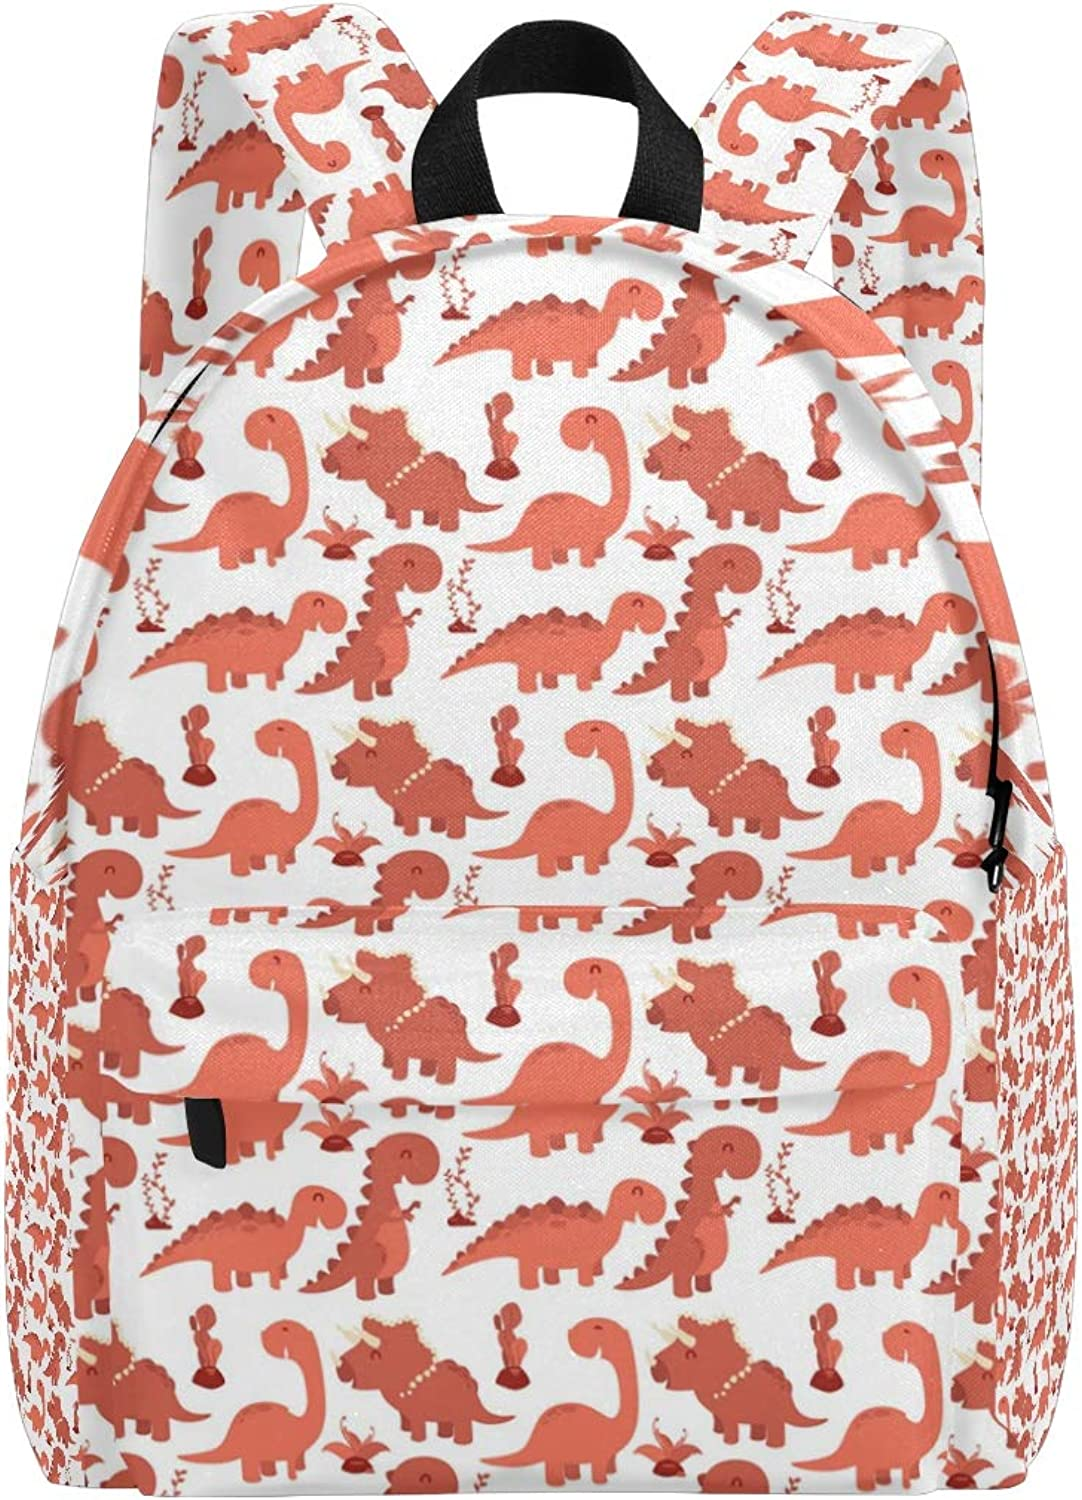 College Bookbag Red Dinosaurs and Cactu Print Schoolbag Unisex Backpack Hiking Daypacks Travel Sports Bags